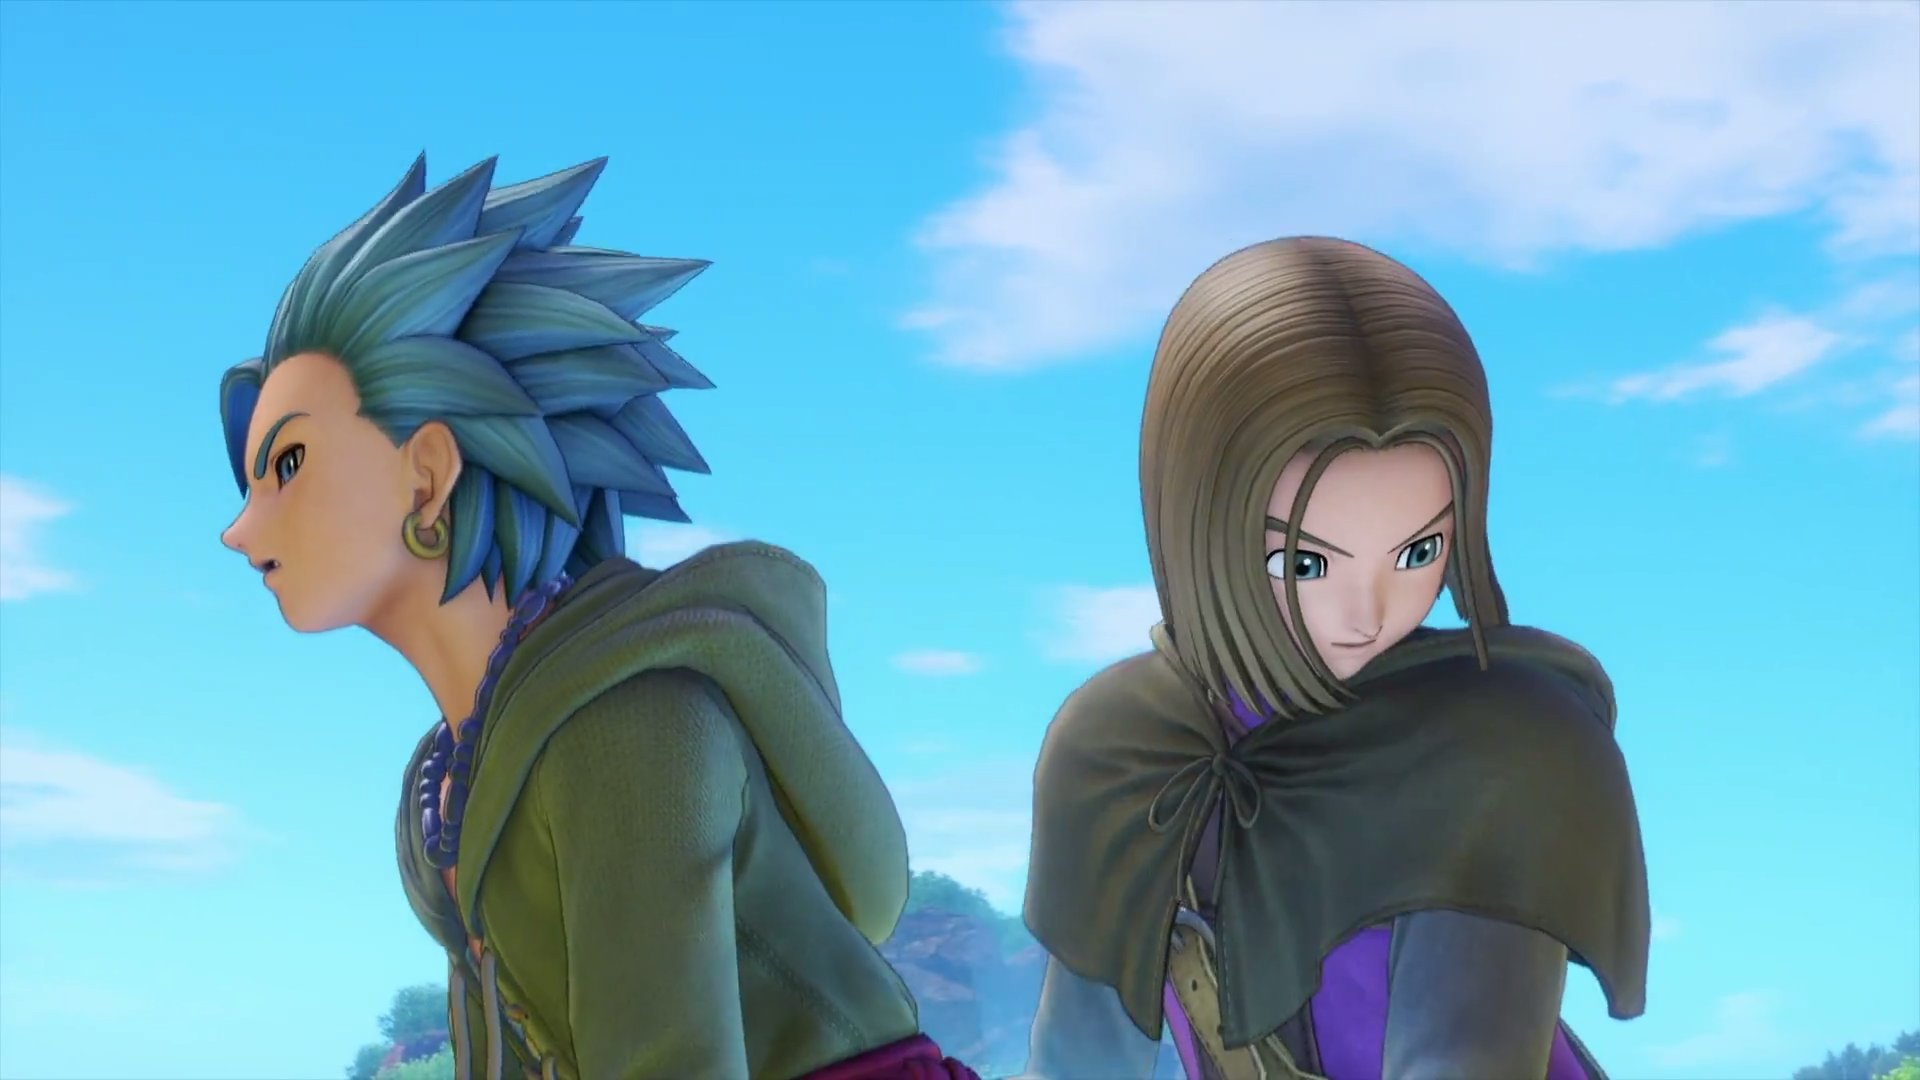 Dragon Quest Xi To Arrive On September 4th Gamespace Com